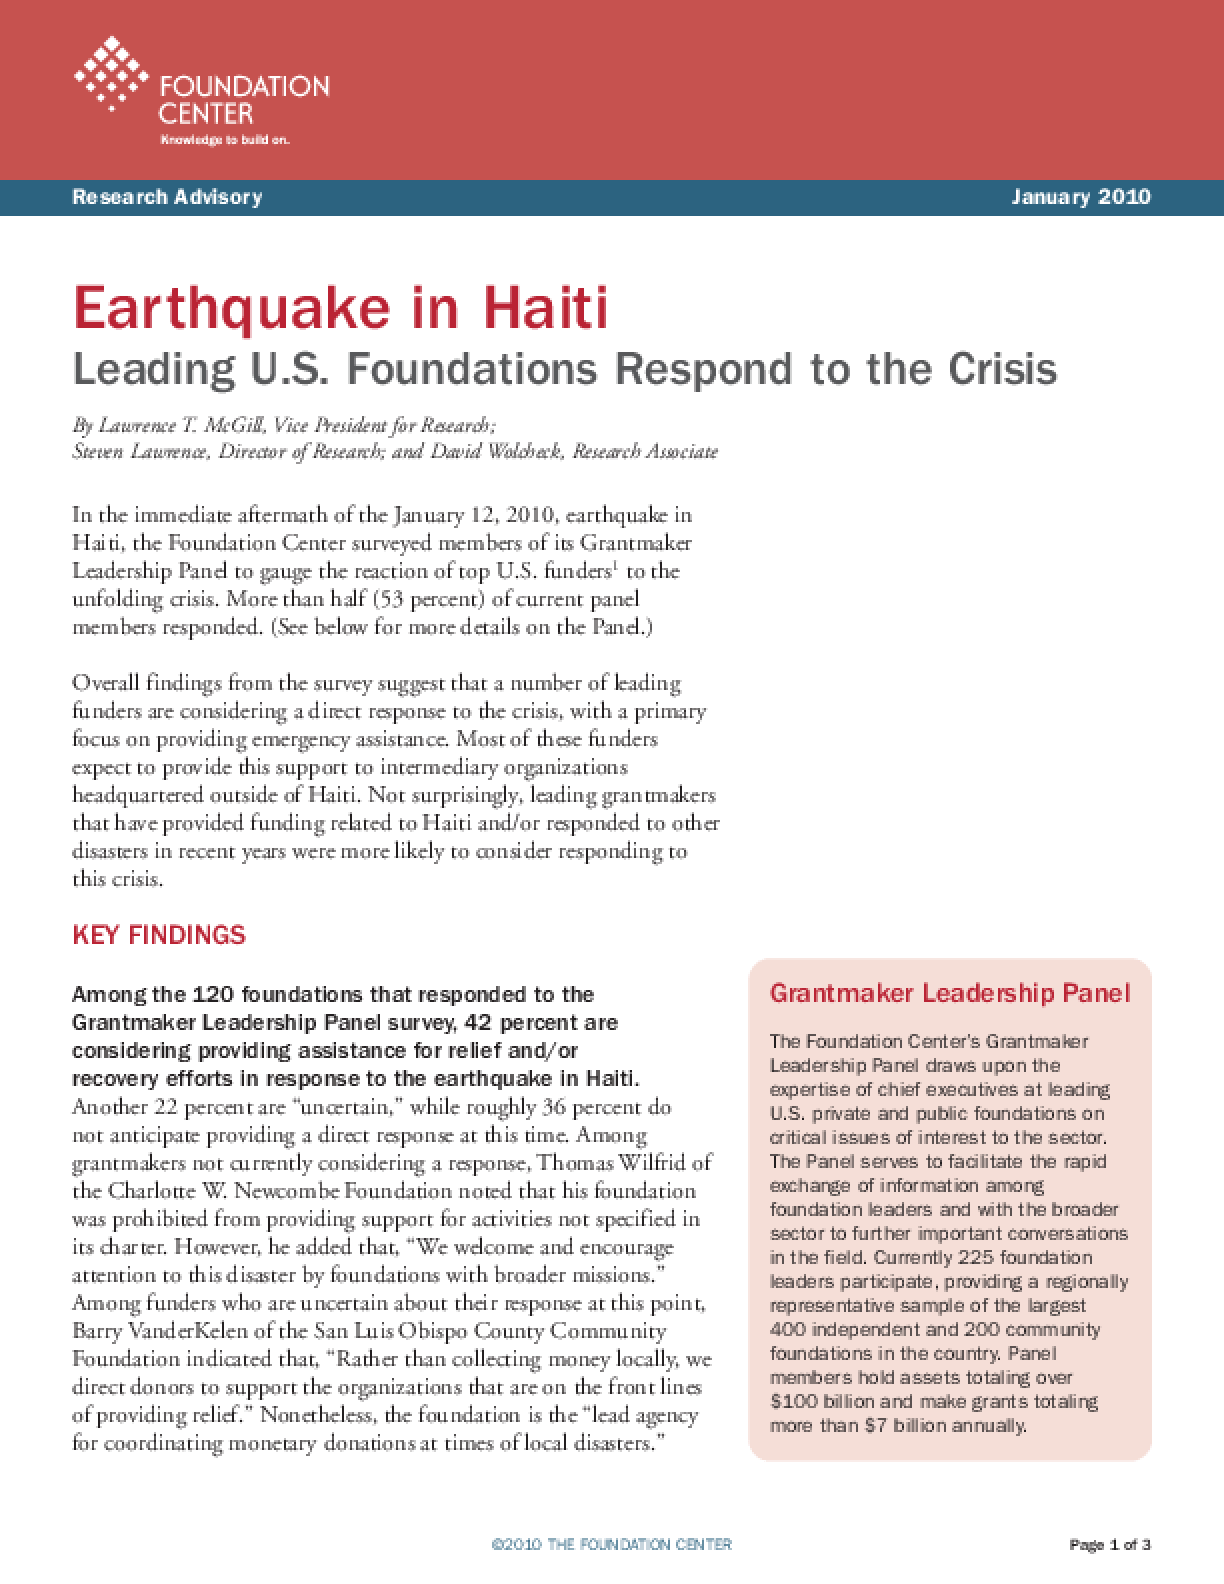 Earthquake in Haiti: Leading U.S. Foundations Respond to the Crisis